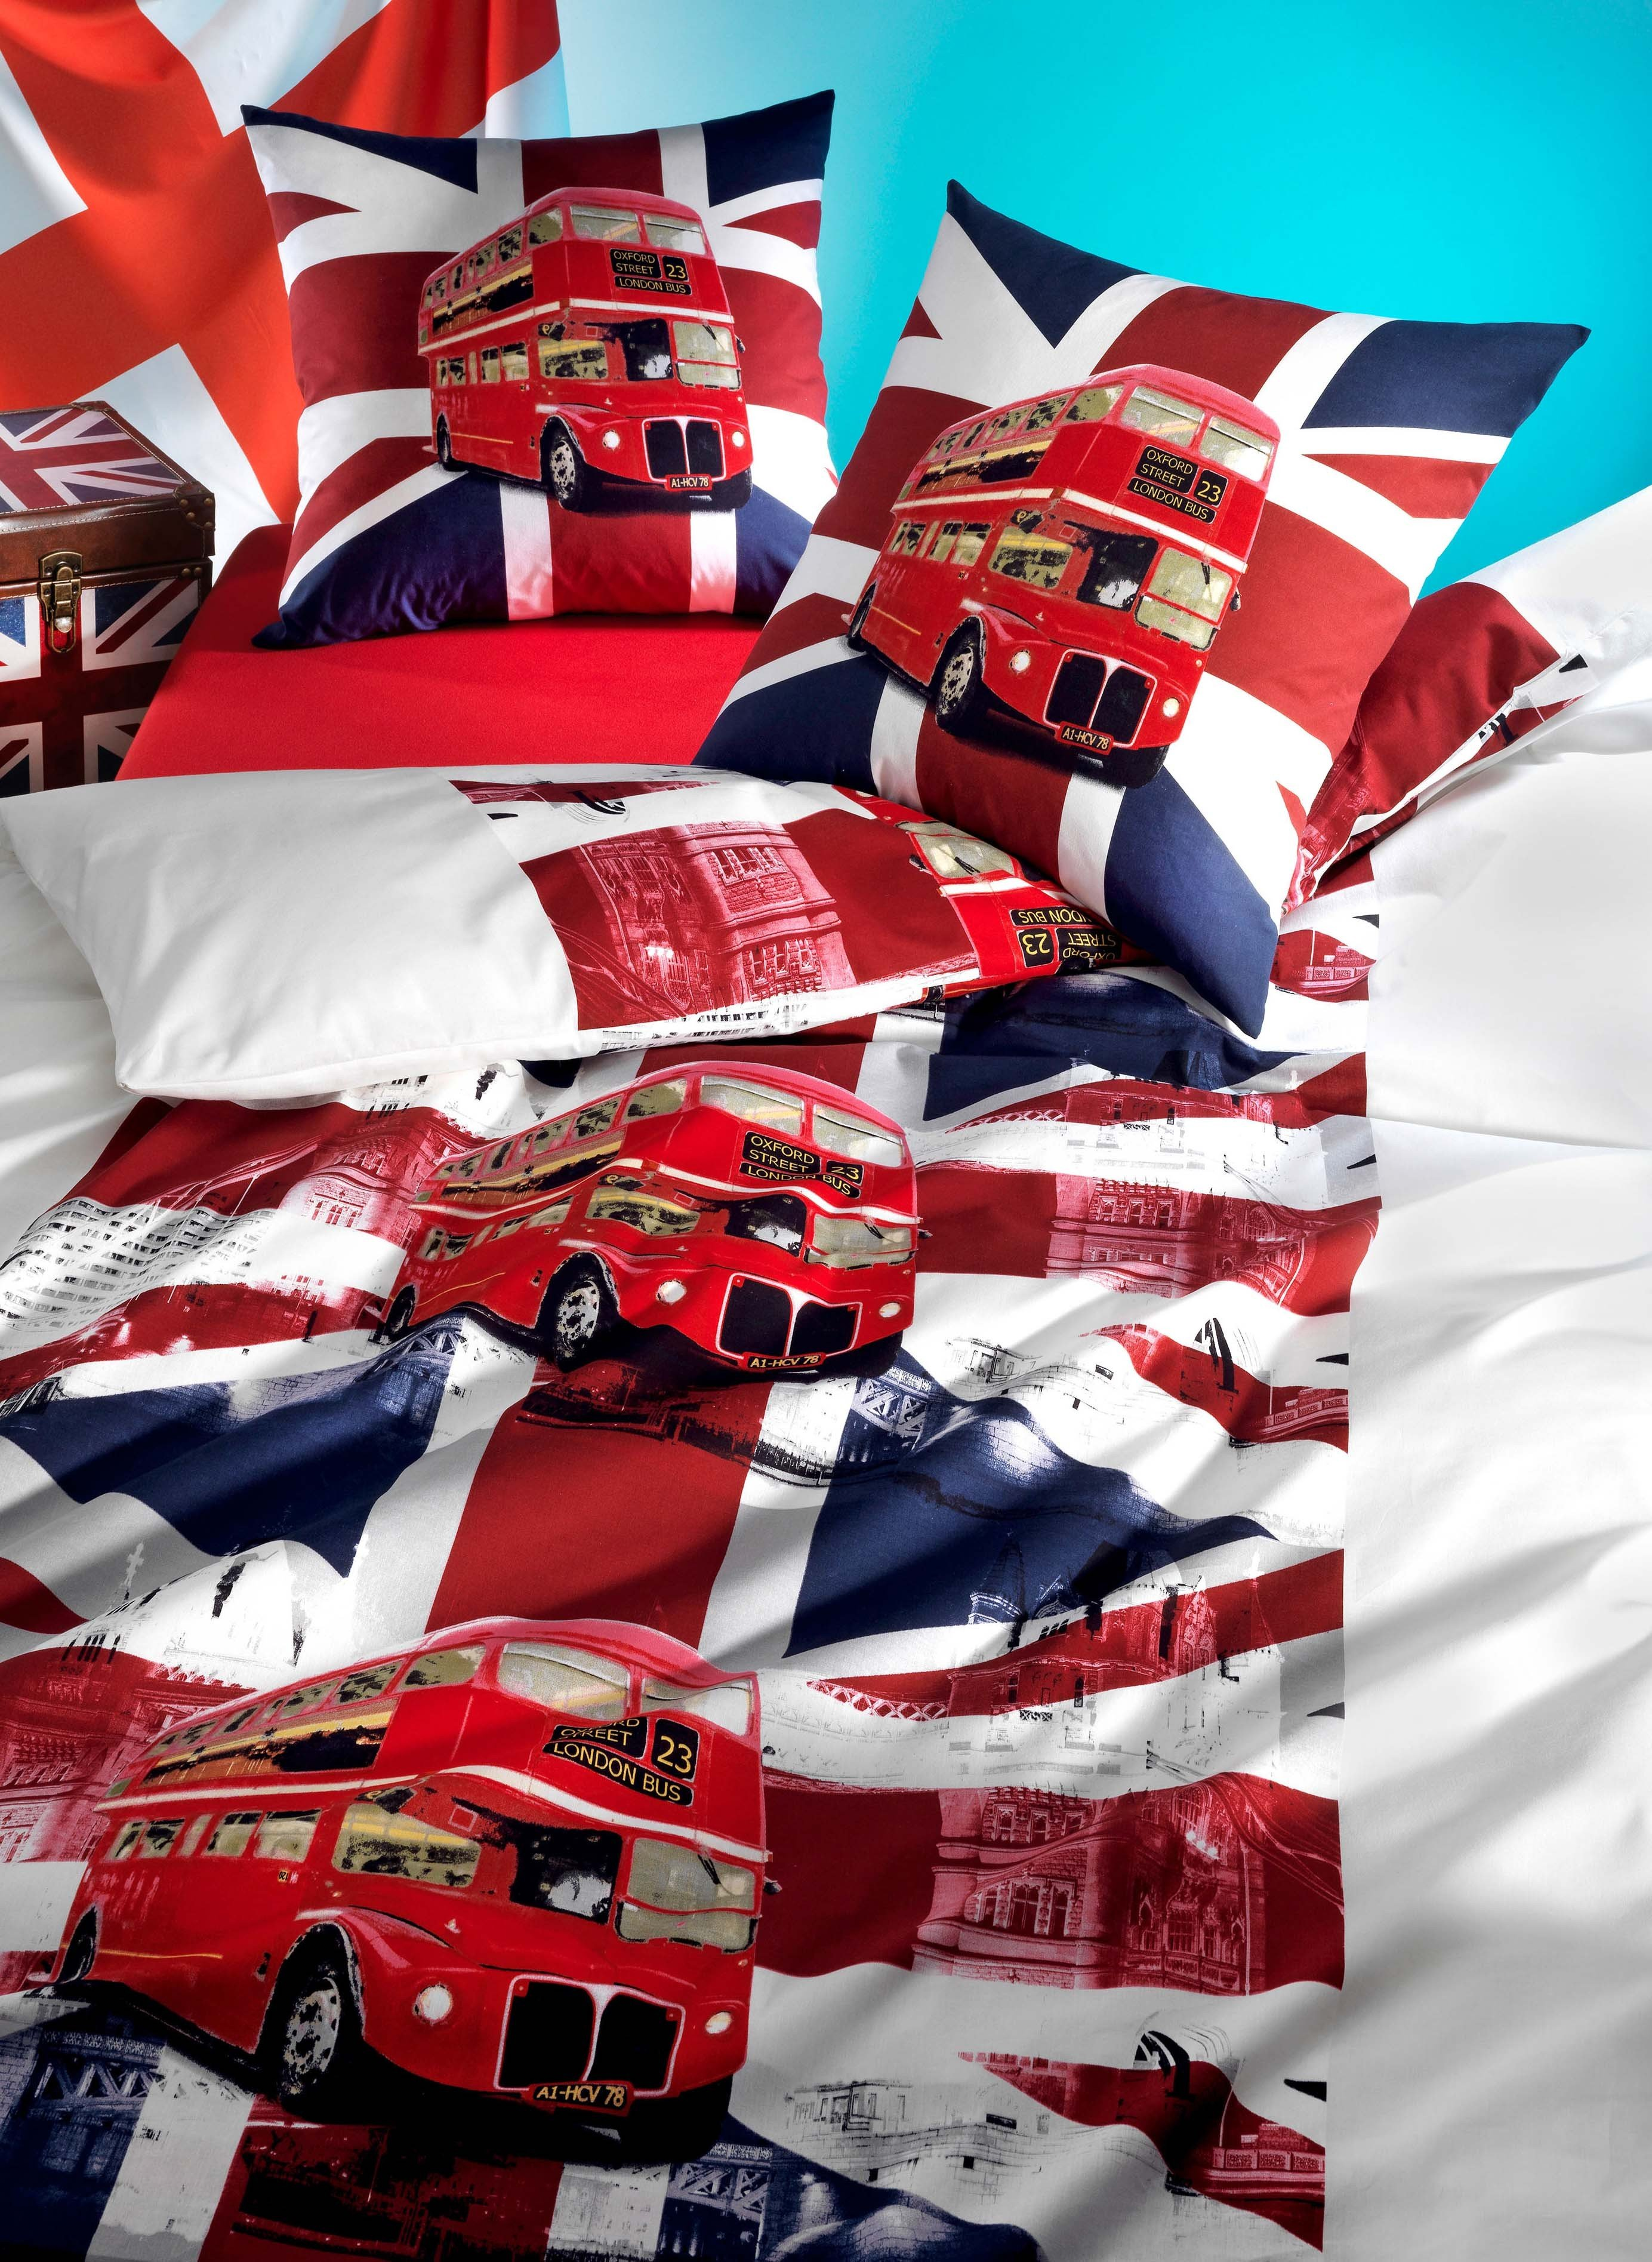 garniture de lit london bus jeunesse enfants literie tout pour le lit. Black Bedroom Furniture Sets. Home Design Ideas